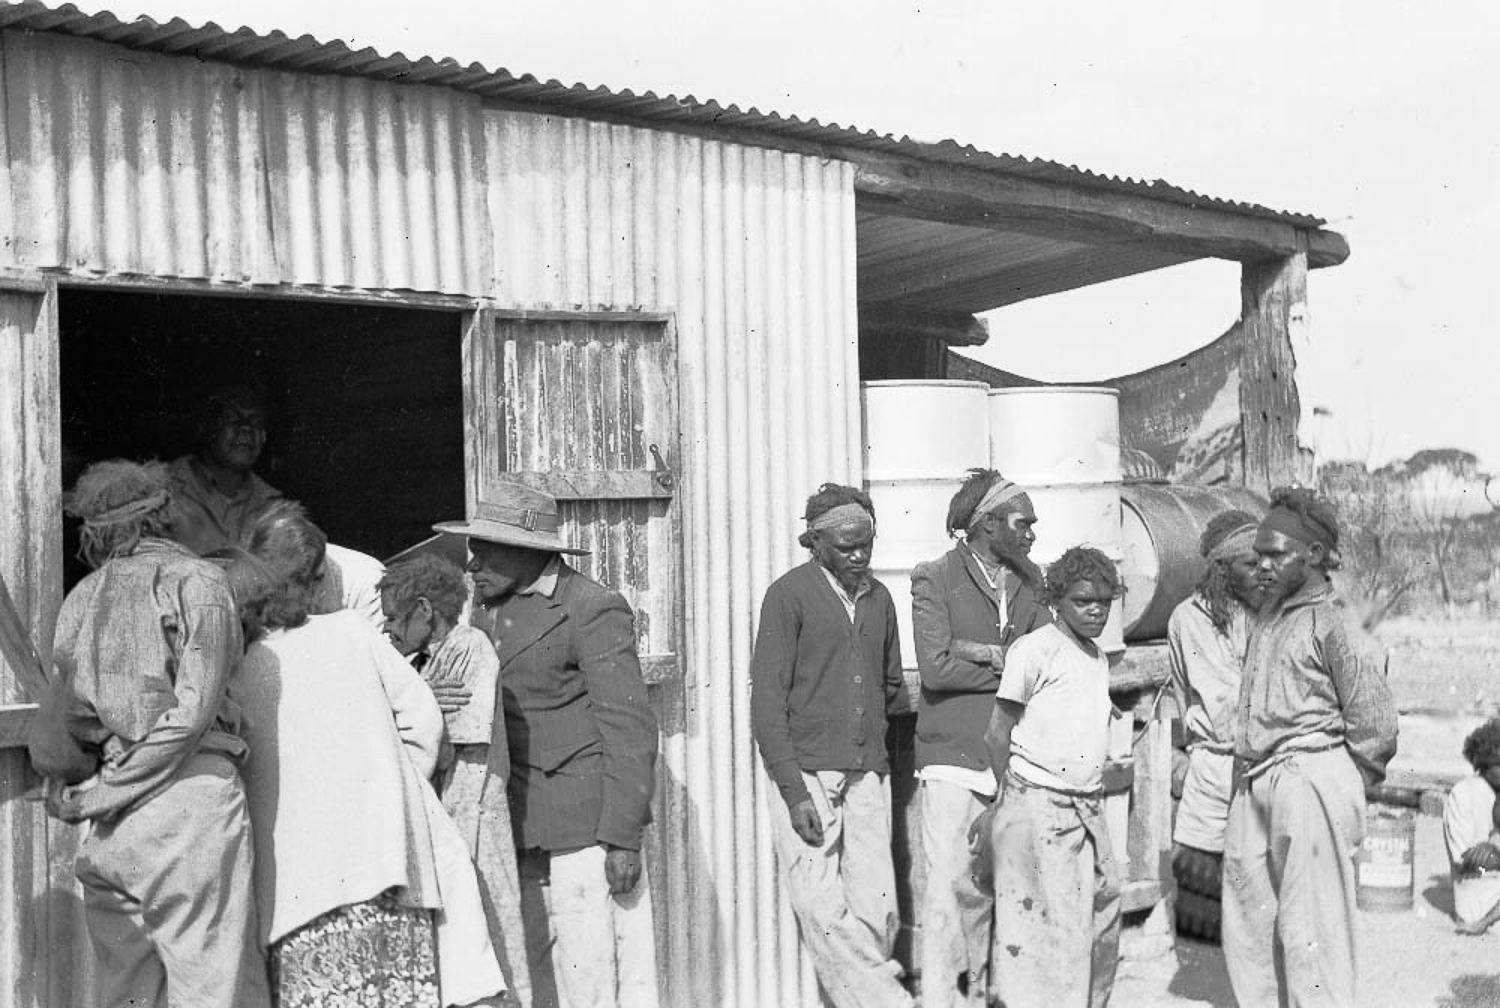 Jack Jamieson, Albert Jamieson, Frank Hogan, Arthur Jamieson and Bill Jamieson stand huddled together on the right, newcomers to the mission at Cundeelee. While the forced relocation of Anangu saw them dislocated from their homelands, descendants are grateful to the trackers who located them, as they were saved from potential disaster from the nuclear testing and a prolonged draught in Spinifex Country.